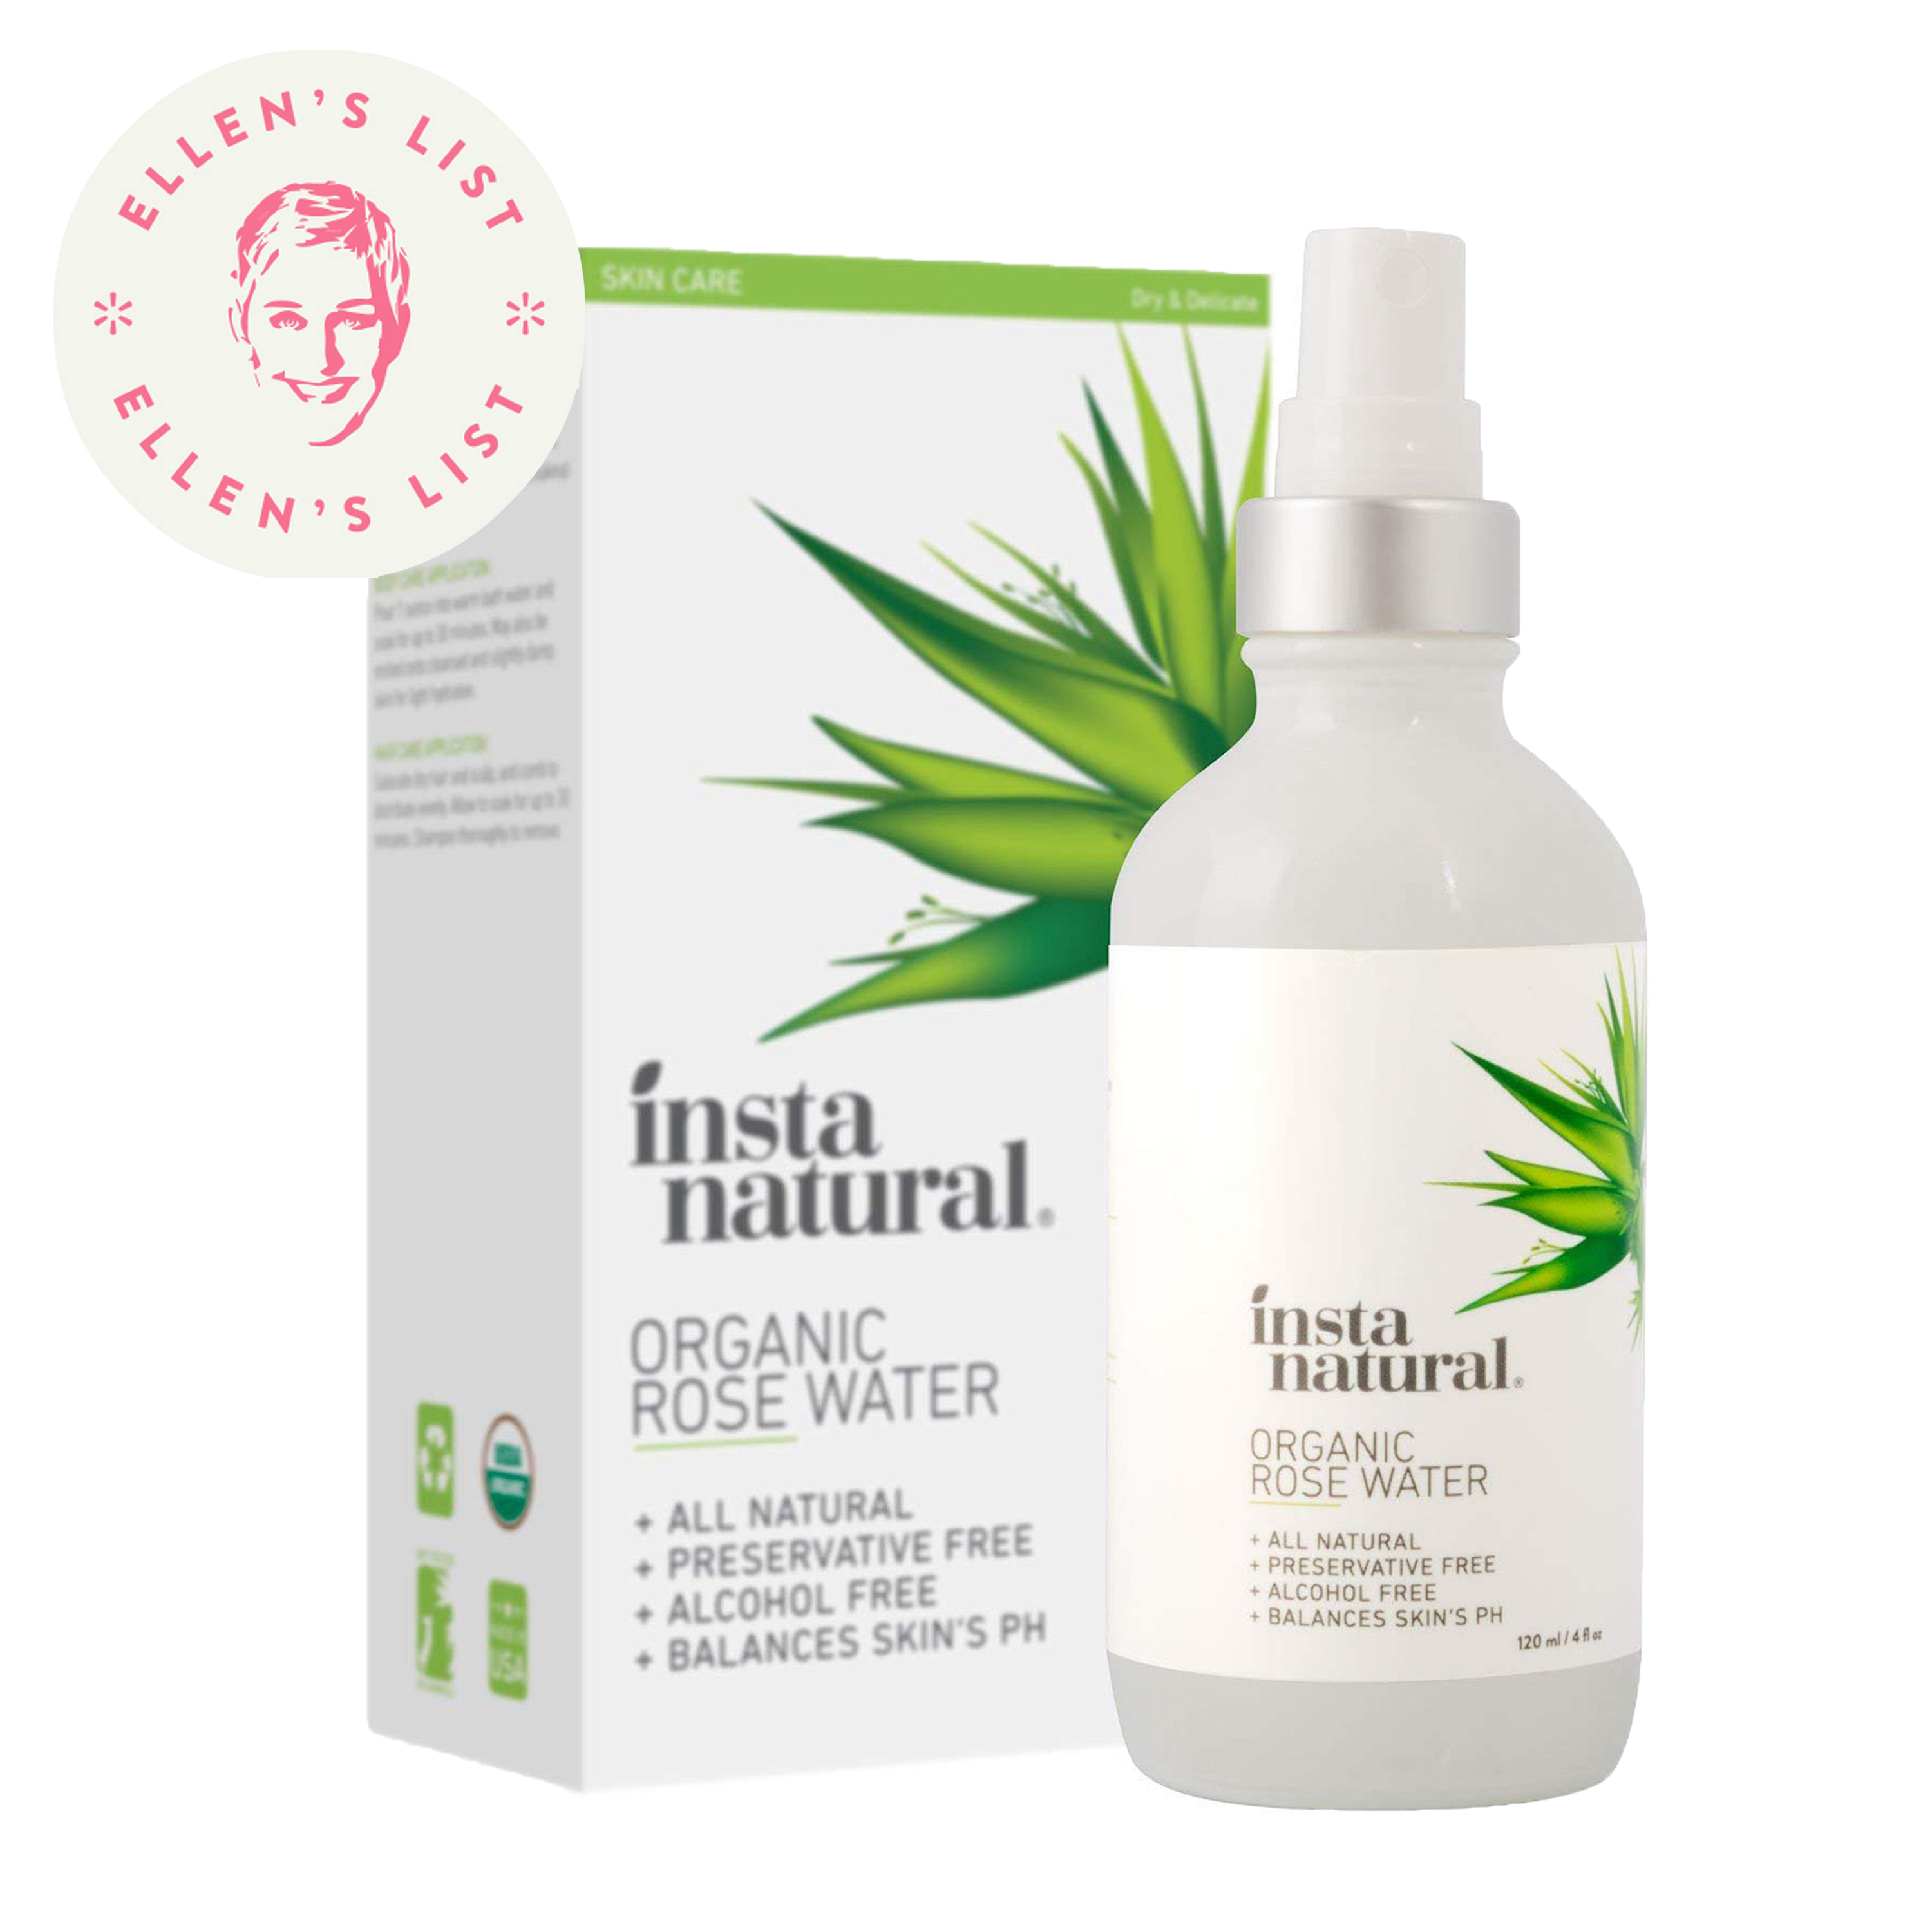 InstaNatural Organic Rose Water, Alcohol Free for Dry & Sensitive Skin, 4 oz